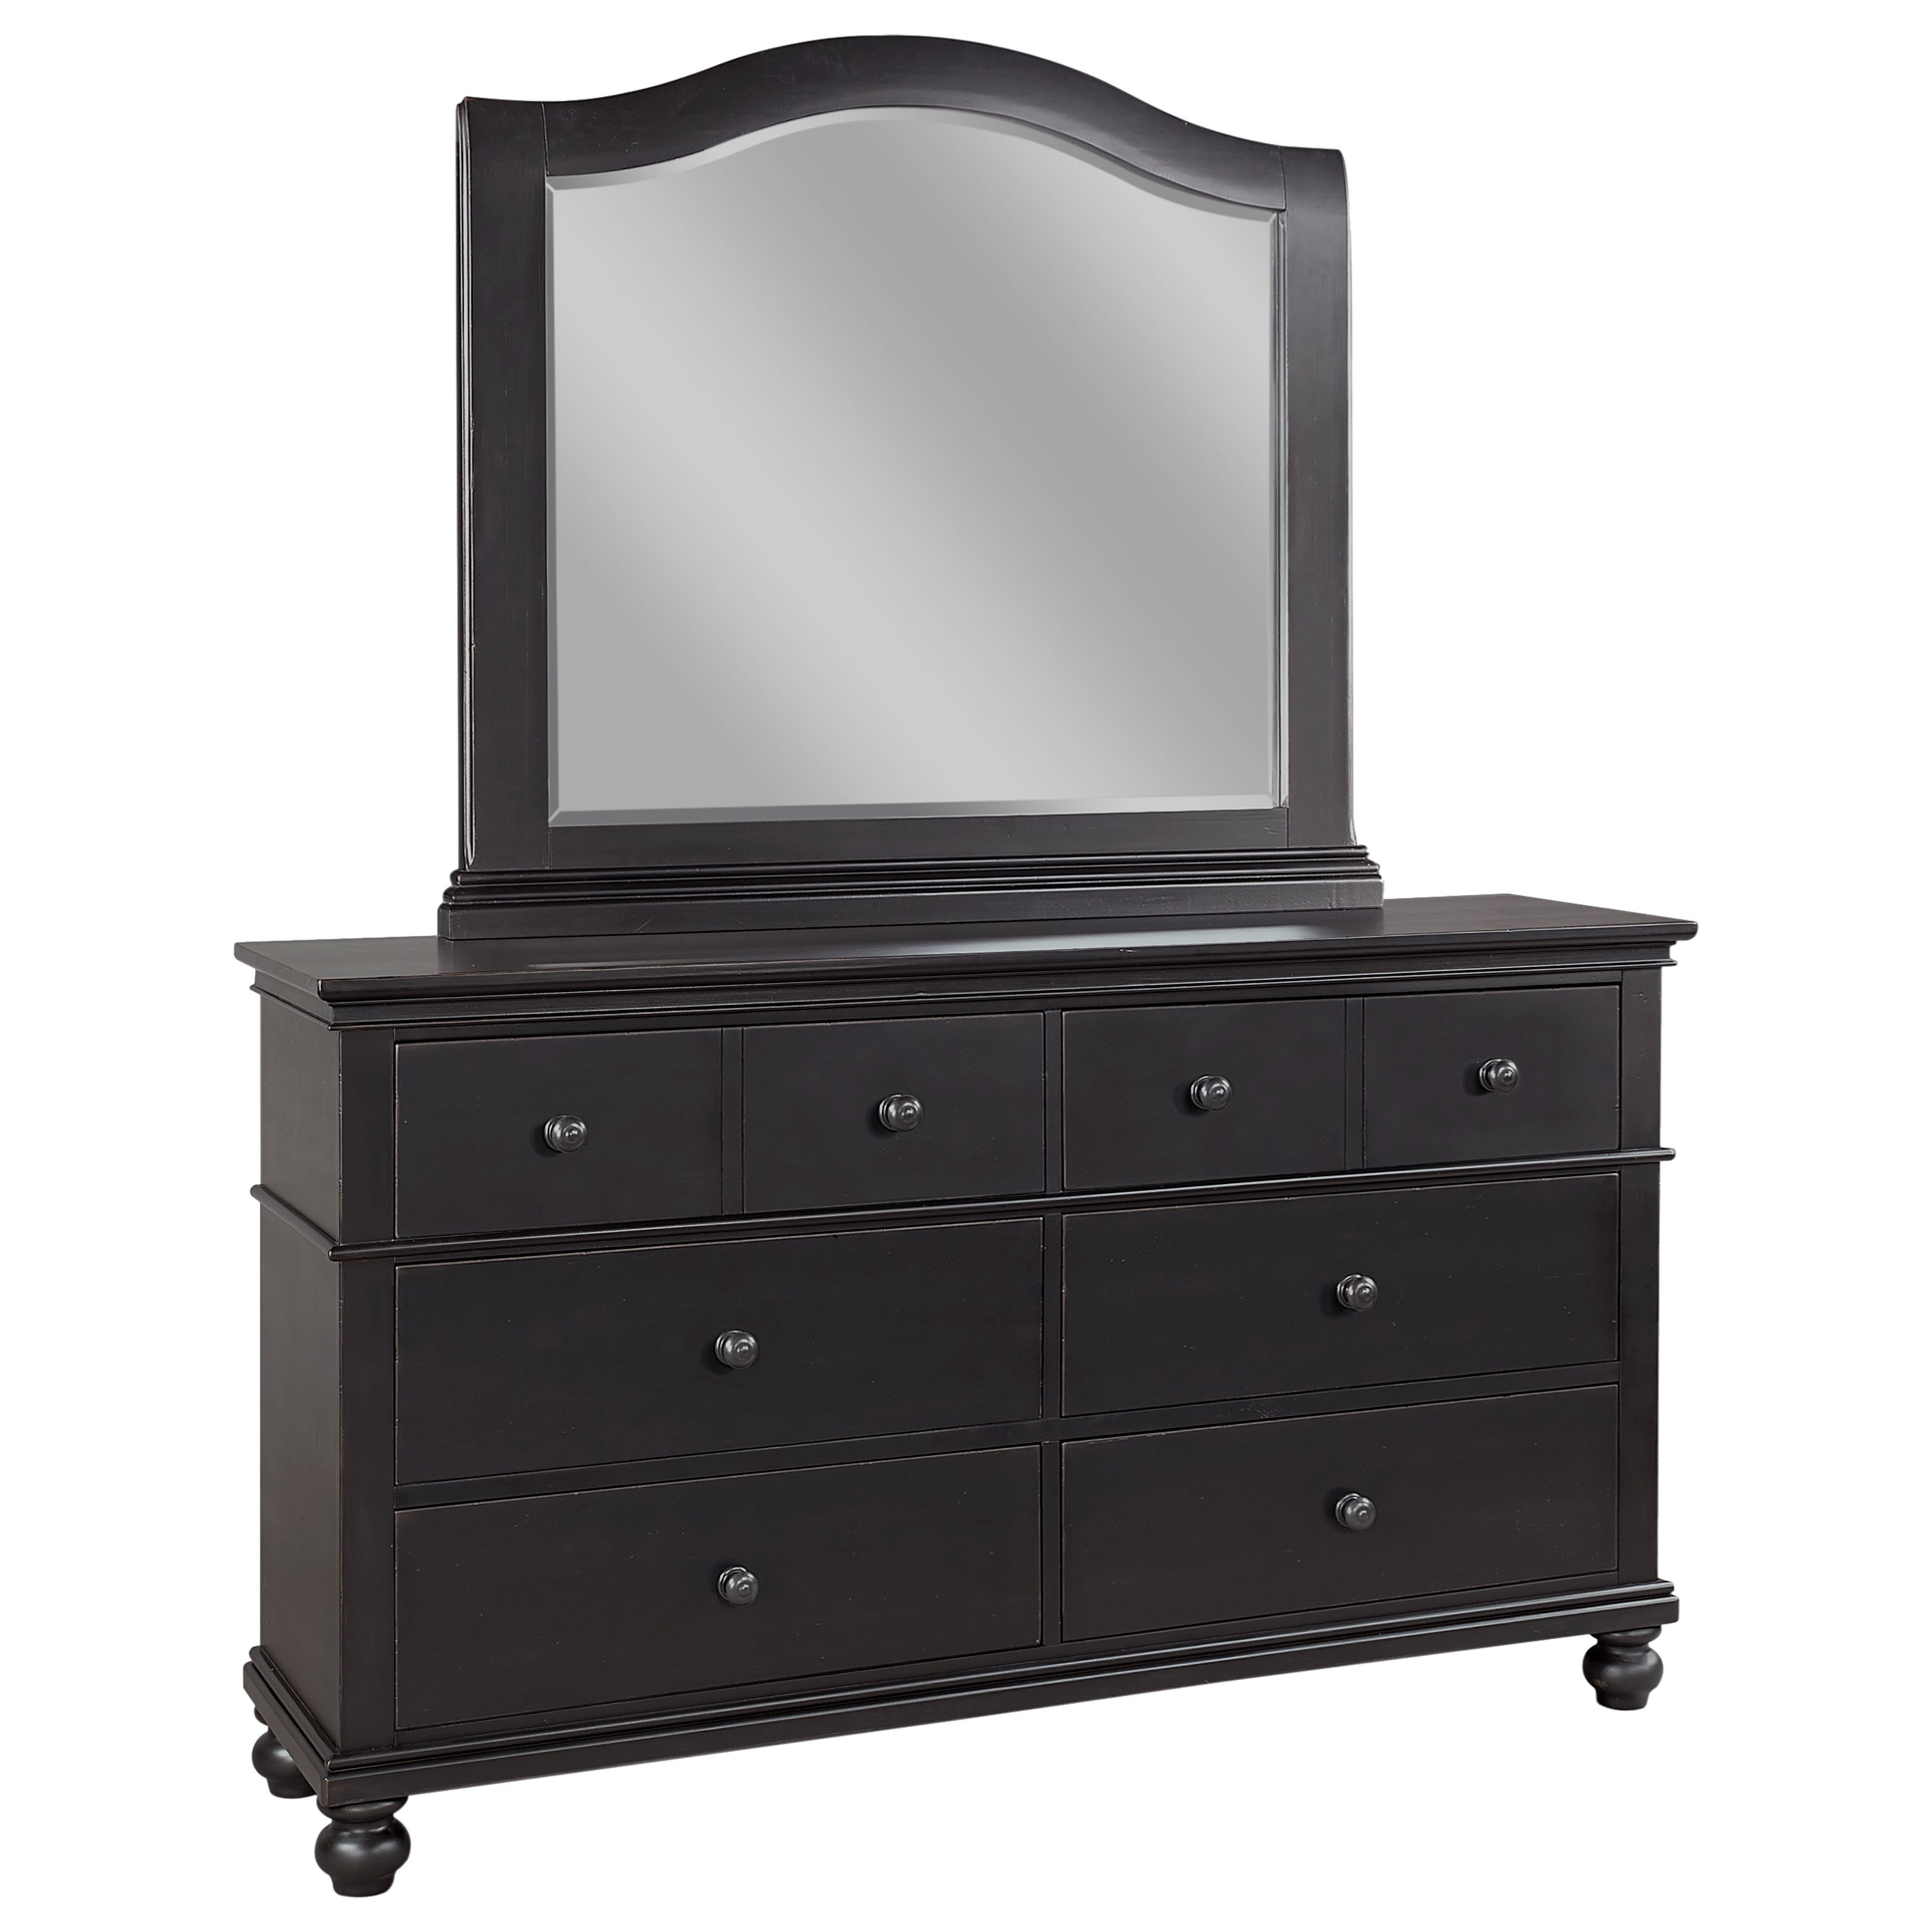 Oxford Dresser with Mirror by Aspenhome at Stoney Creek Furniture